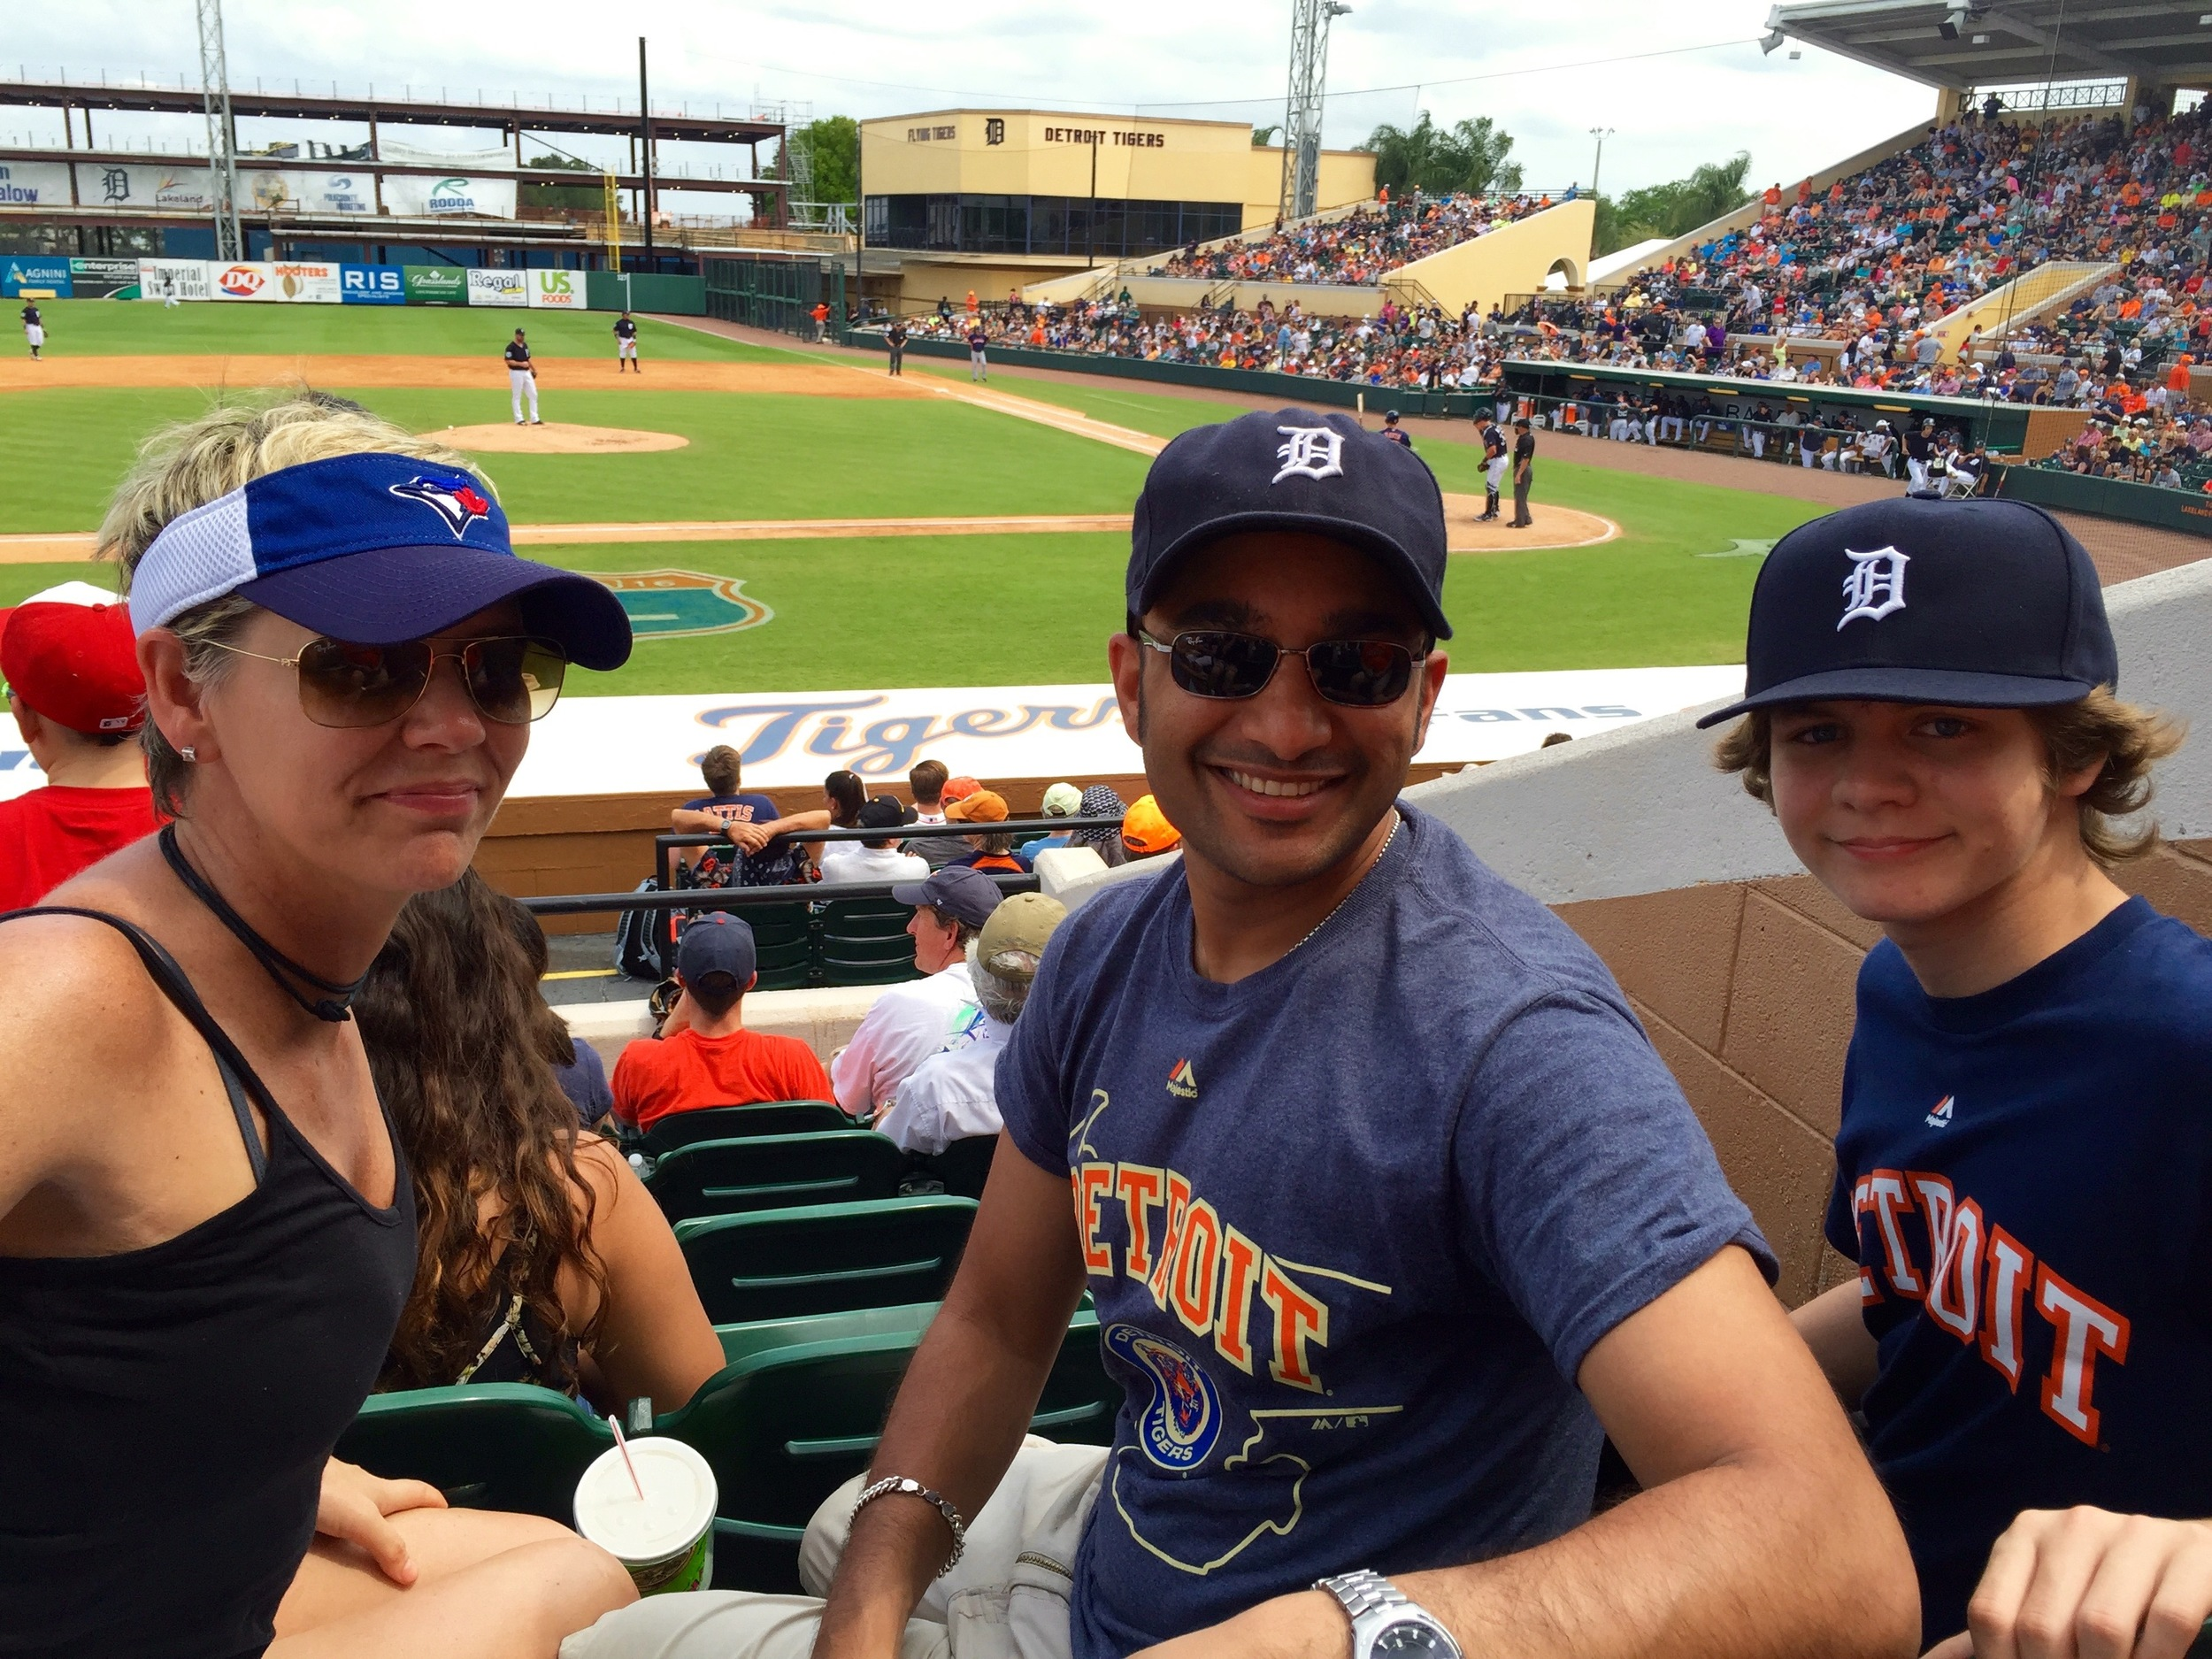 Ty, Muneesh and Monique in Lakeland enjoying a Tigers game.